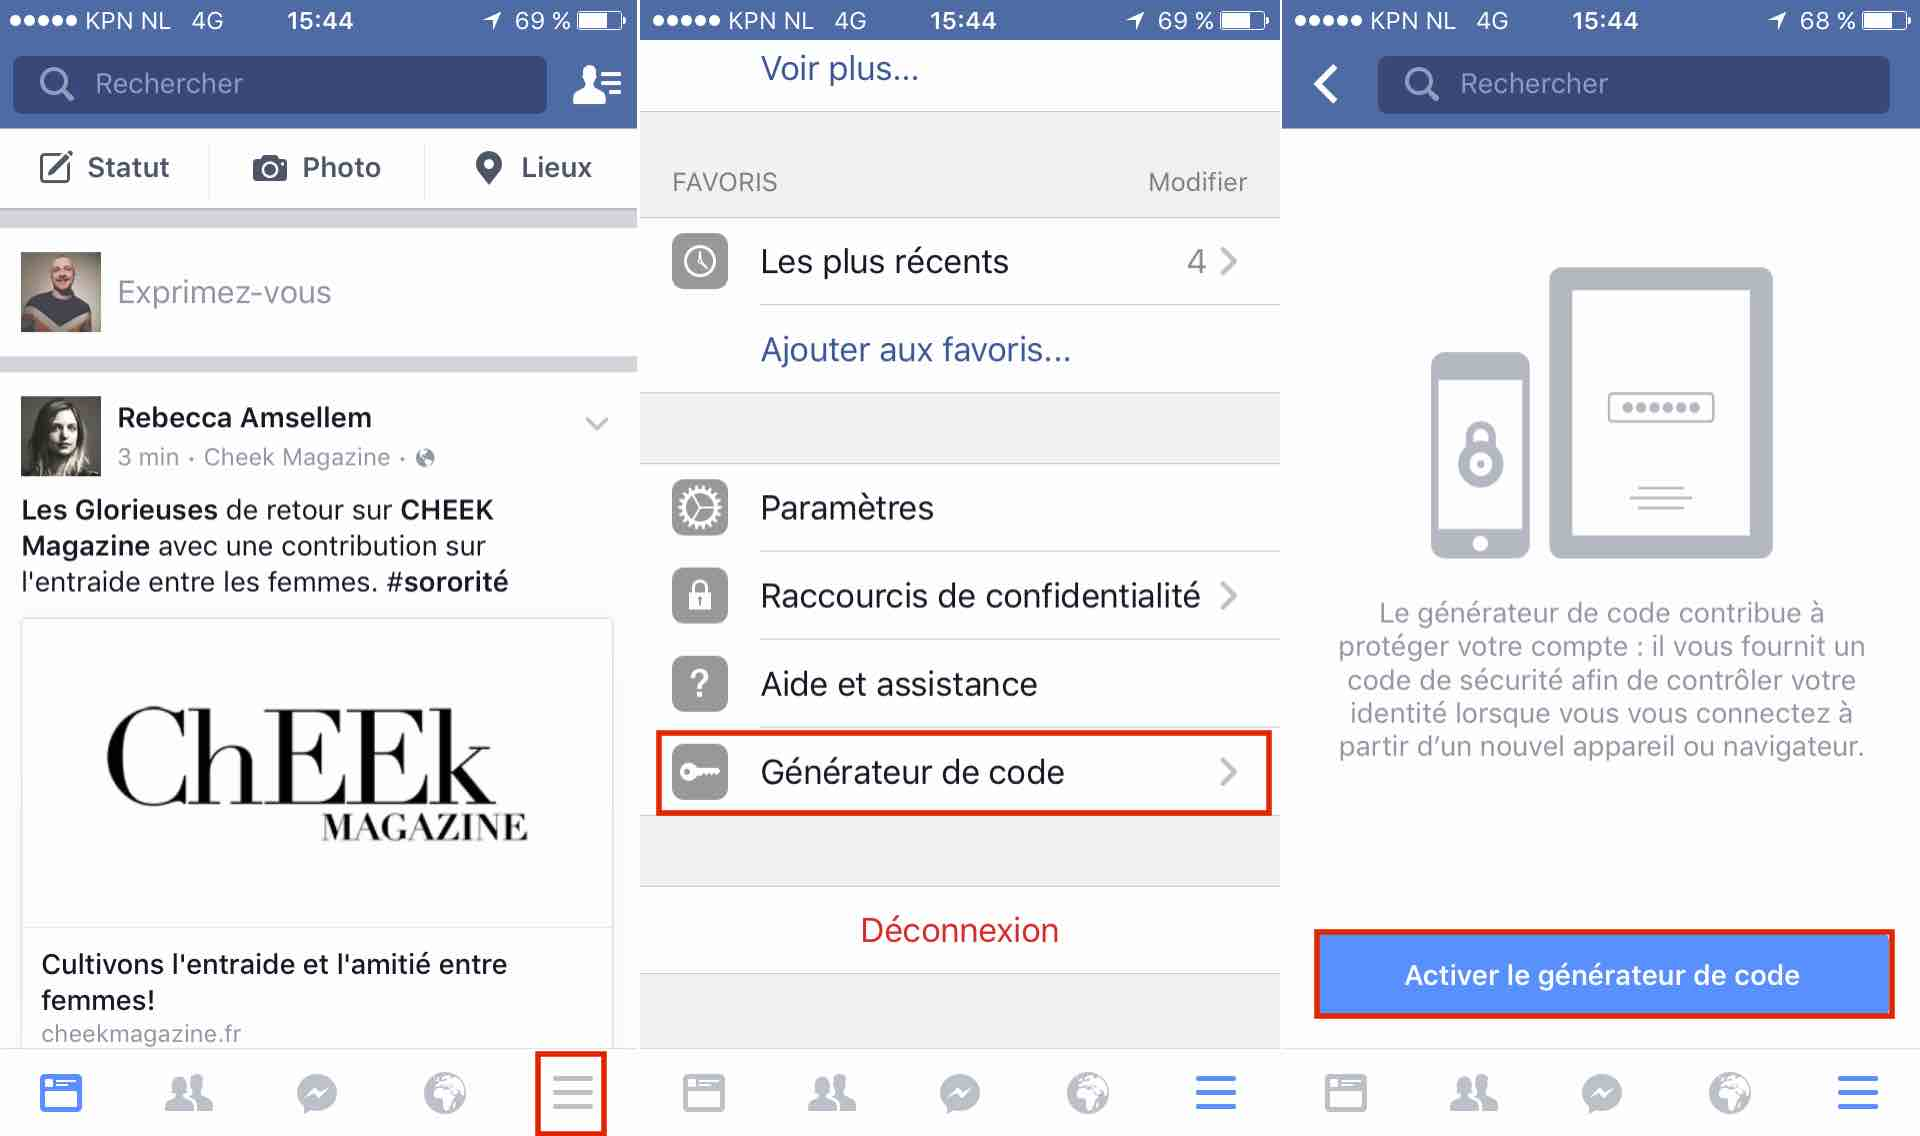 Facebook activer double authentification : comment activer la double authentification pour plus de sécurité